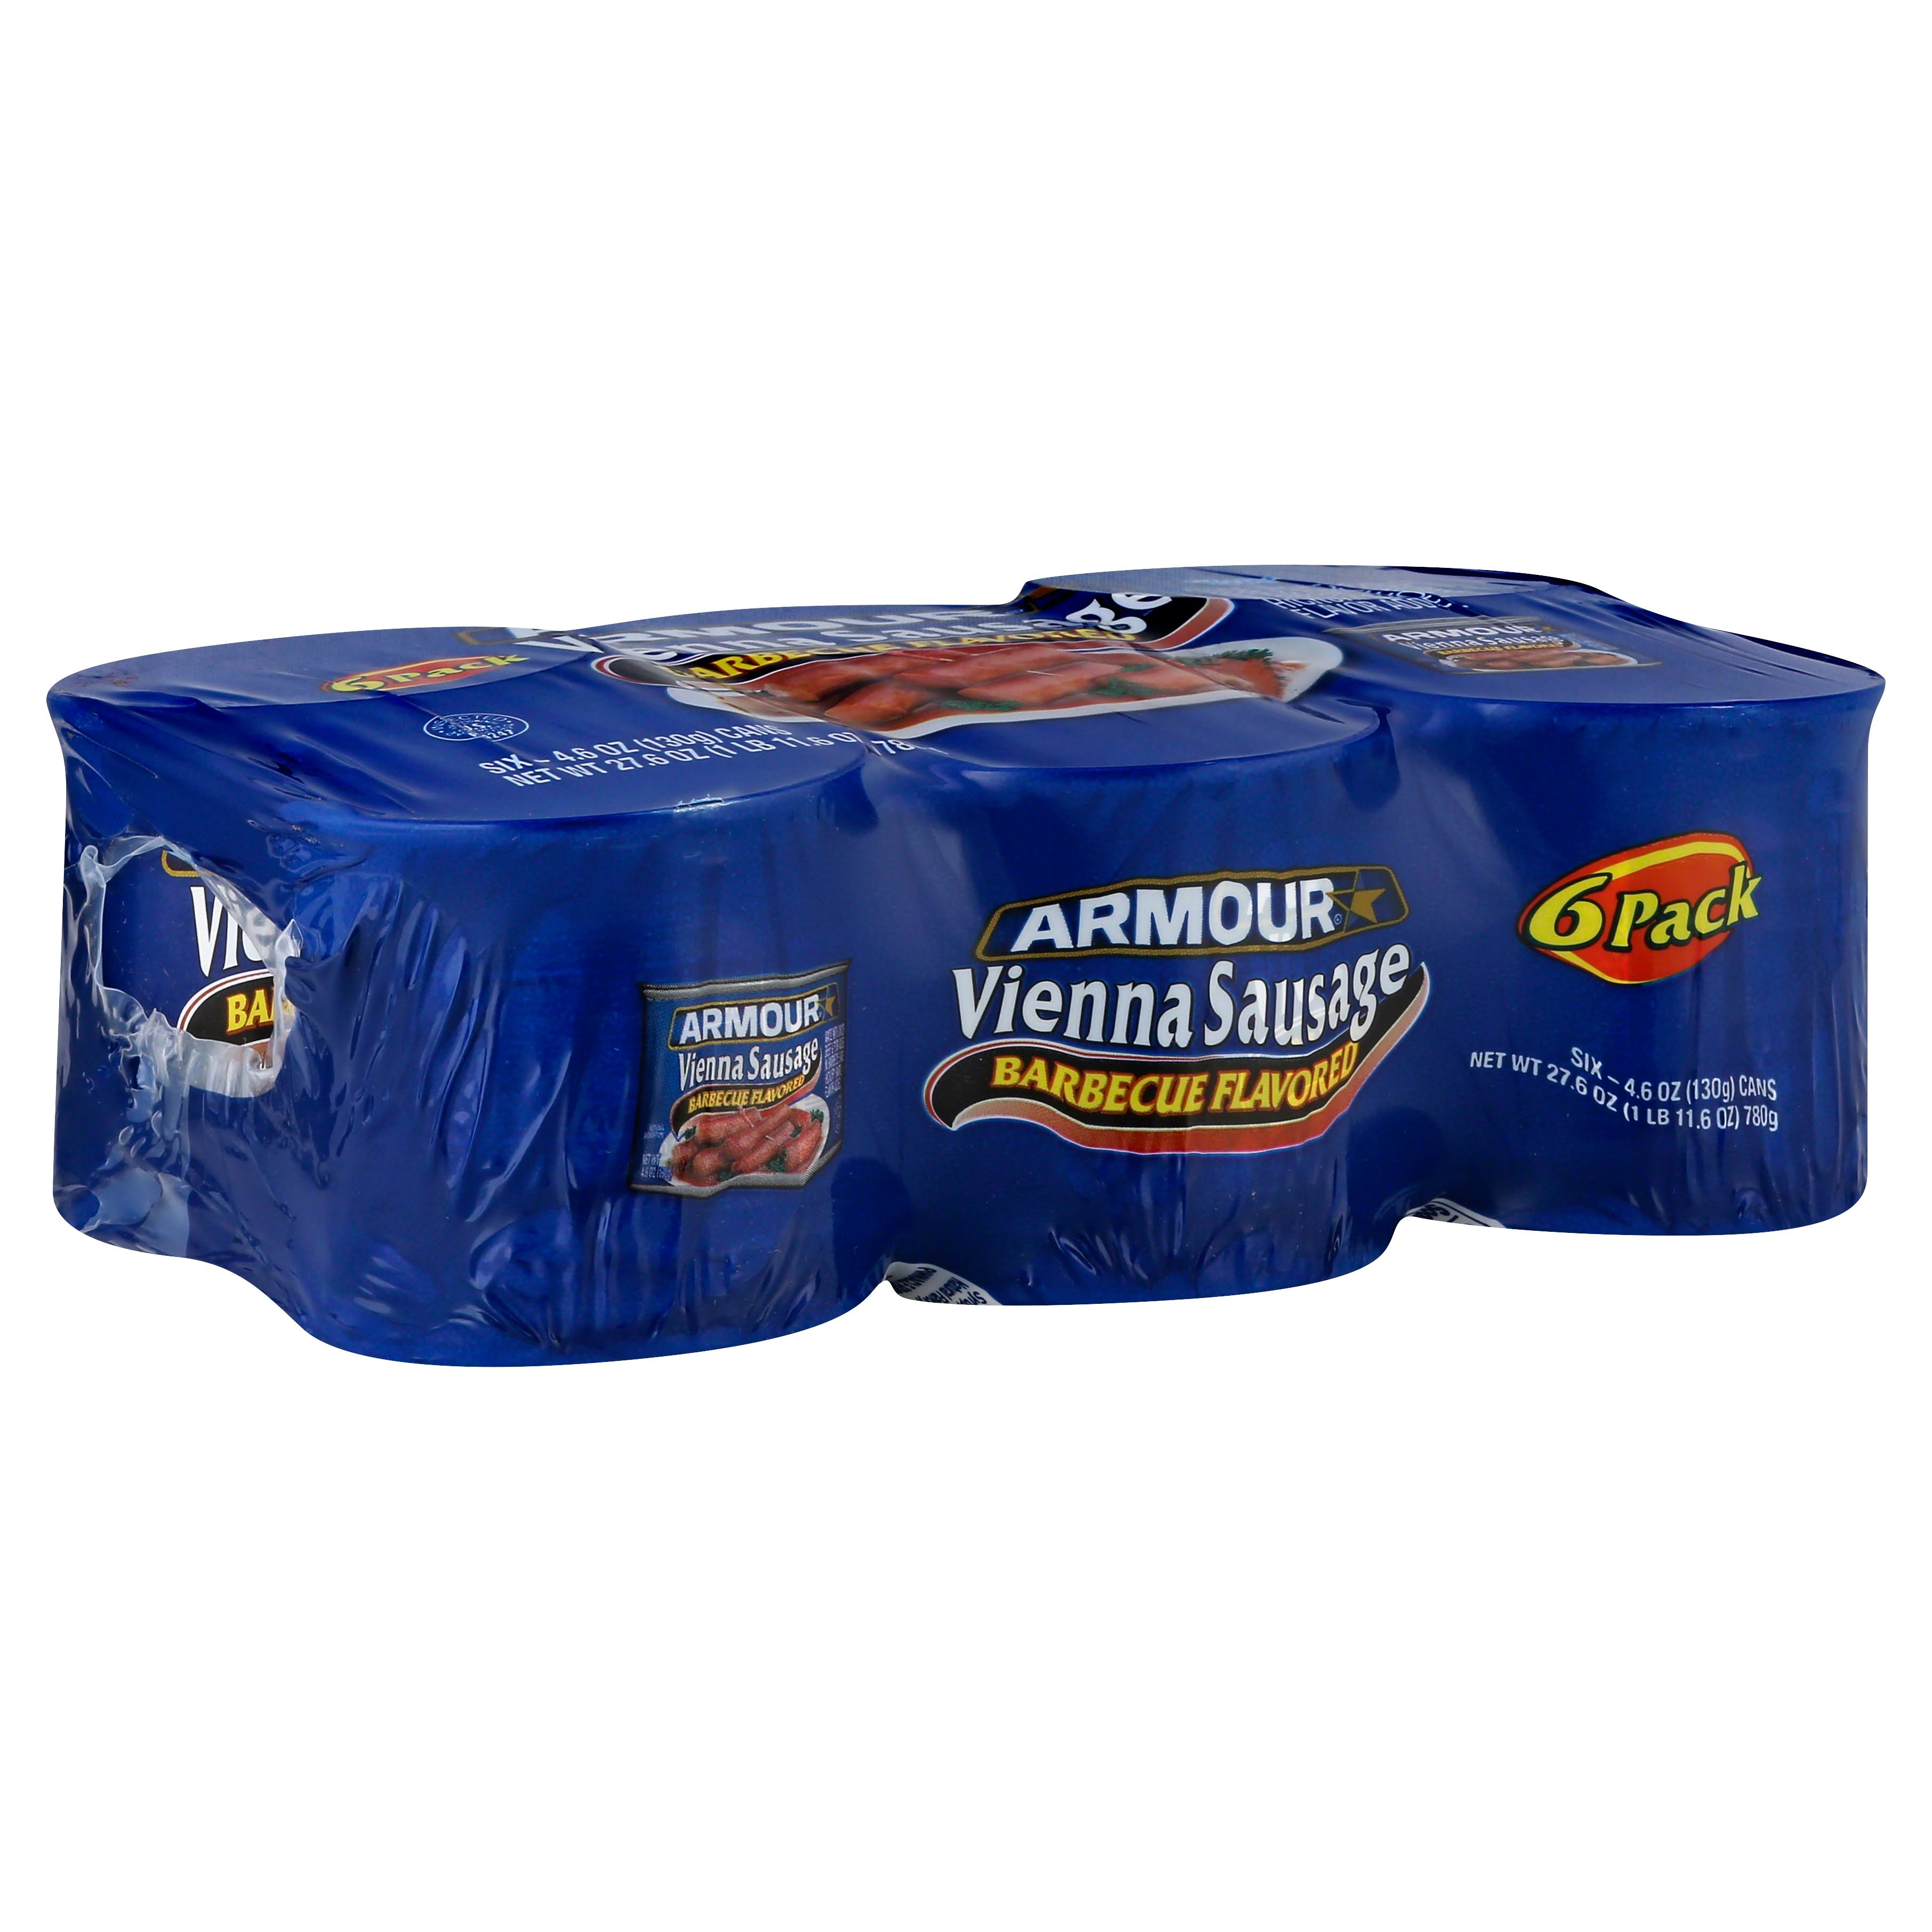 Armour Vienna Sausage - Barbecue Flavored, 6 x 4.6oz